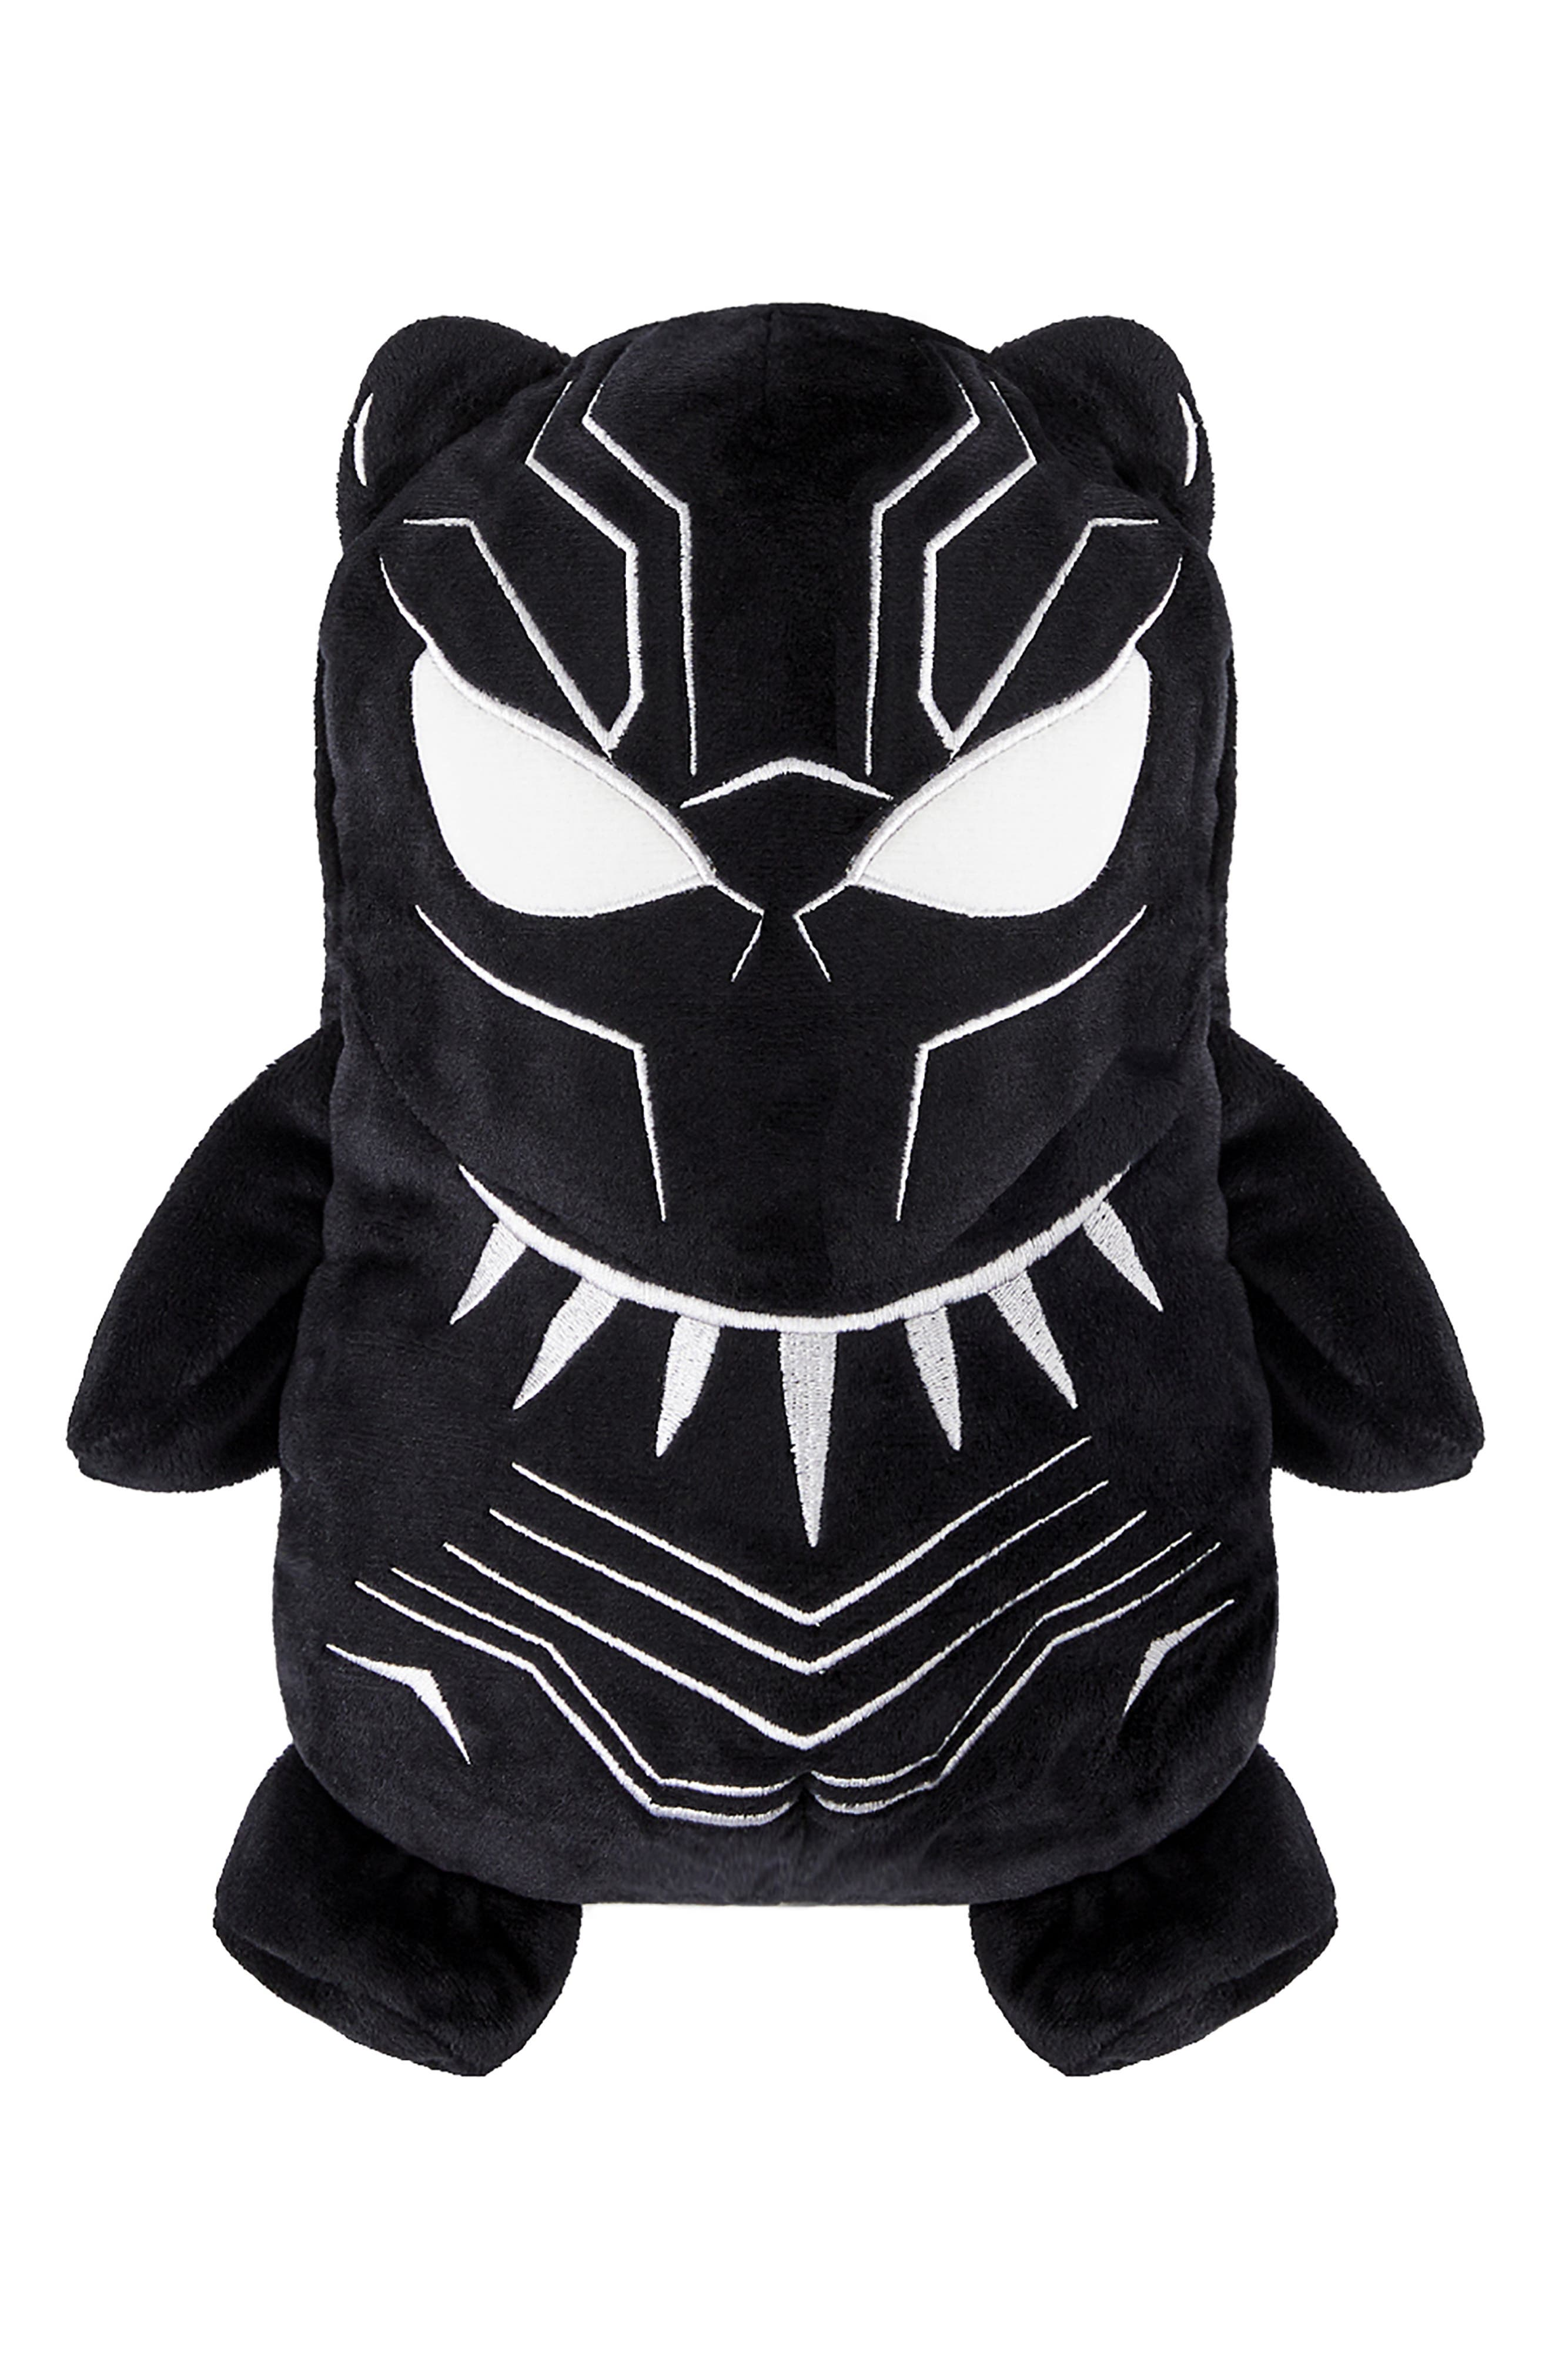 CUBCOATS, Marvel<sup>®</sup> 2018 Black Panther<sup>®</sup> 2-in-1 Stuffed Animal Hoodie, Main thumbnail 1, color, BLACK